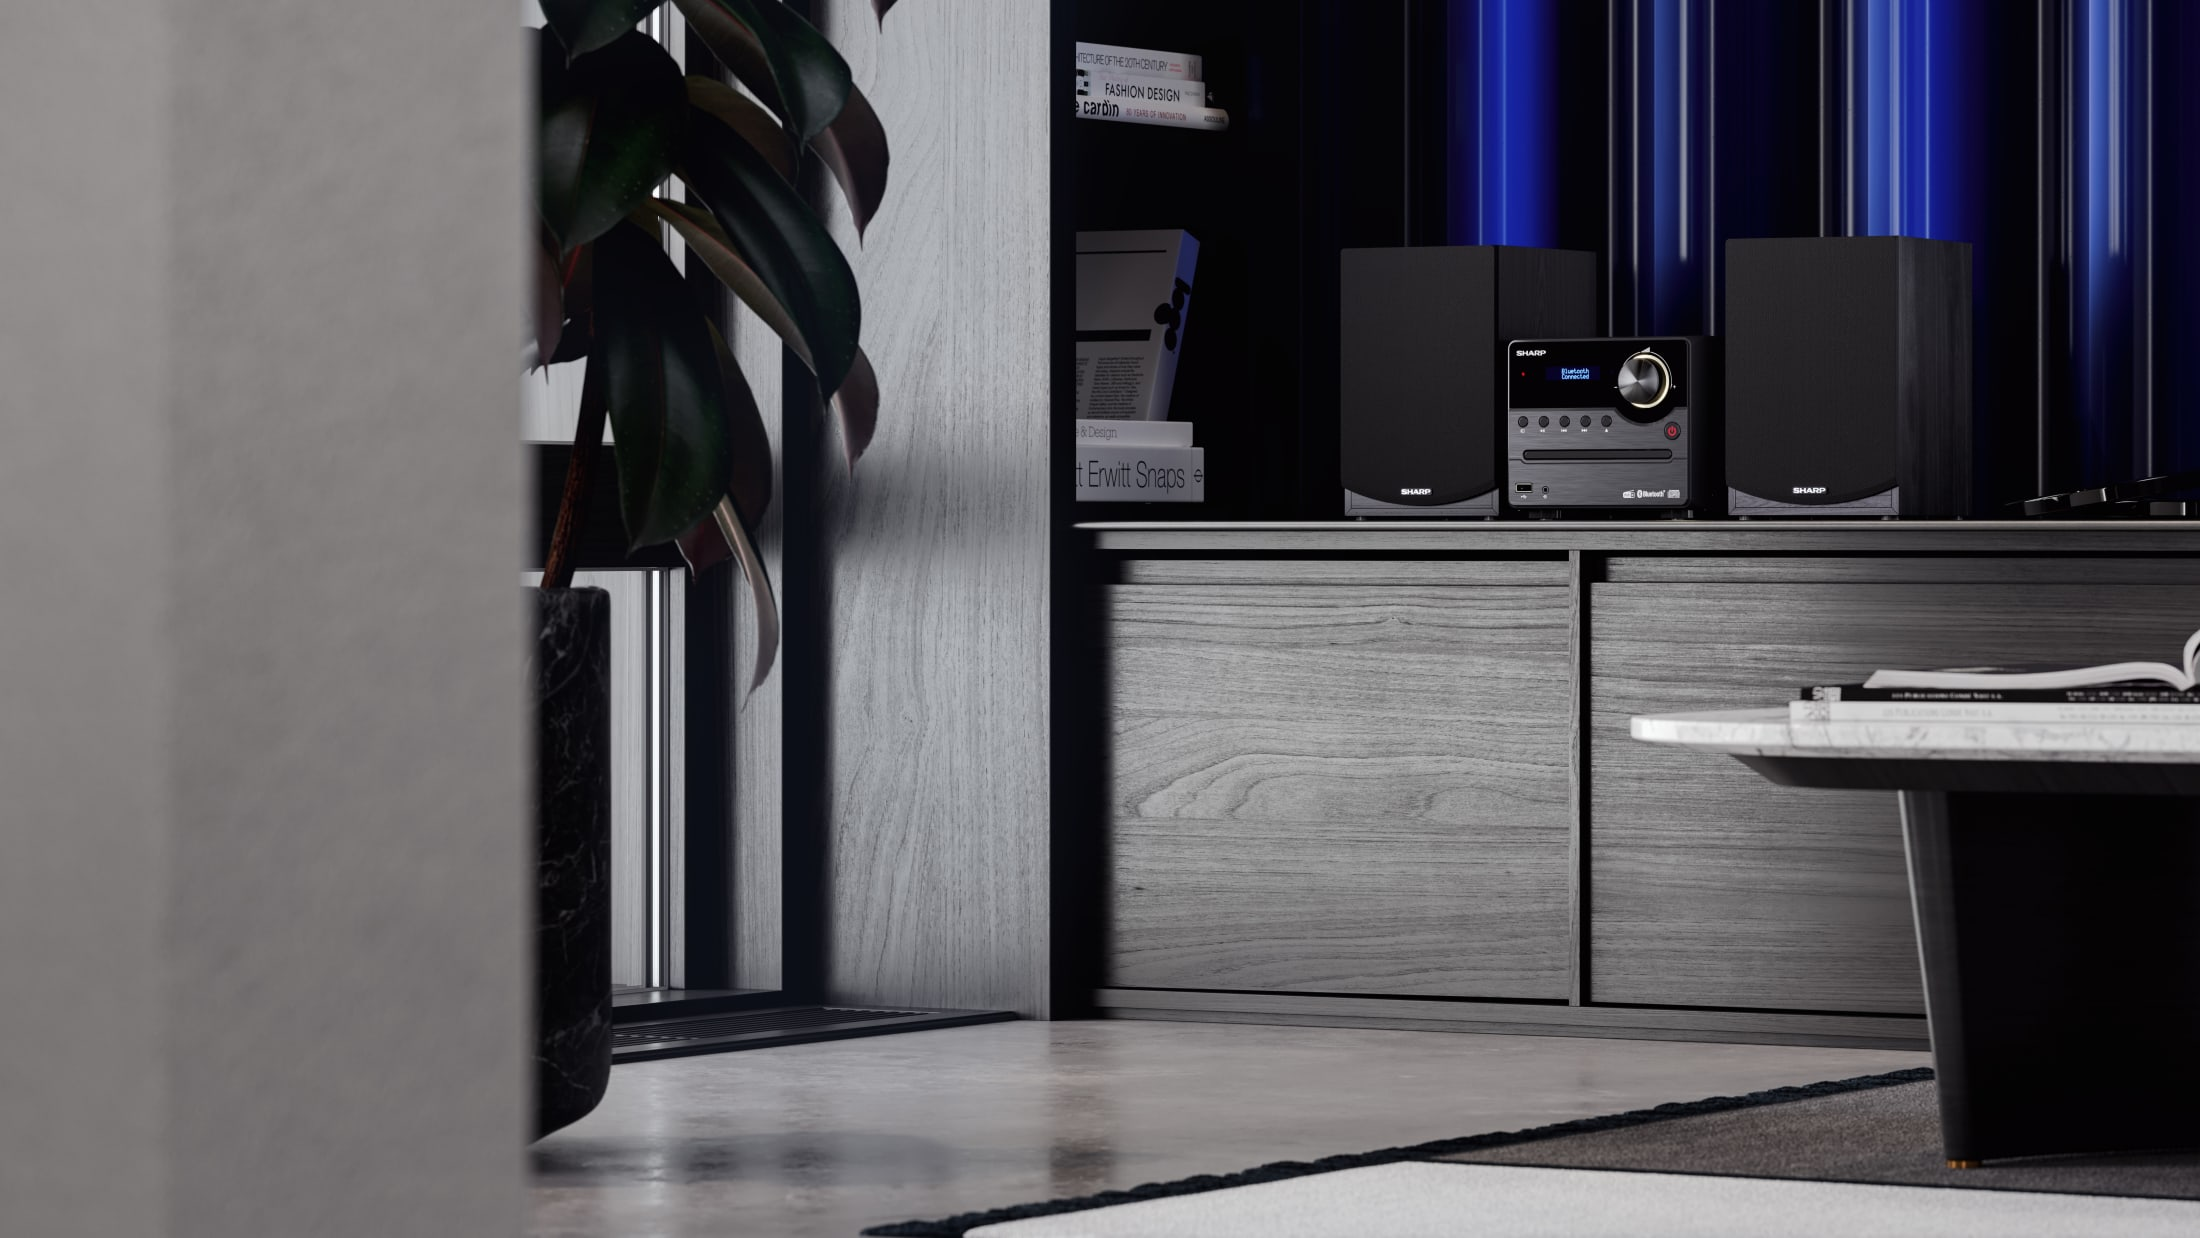 Hi-Fi Micro System with the latest DAB+ radio tuner and Bluetooth connectivity